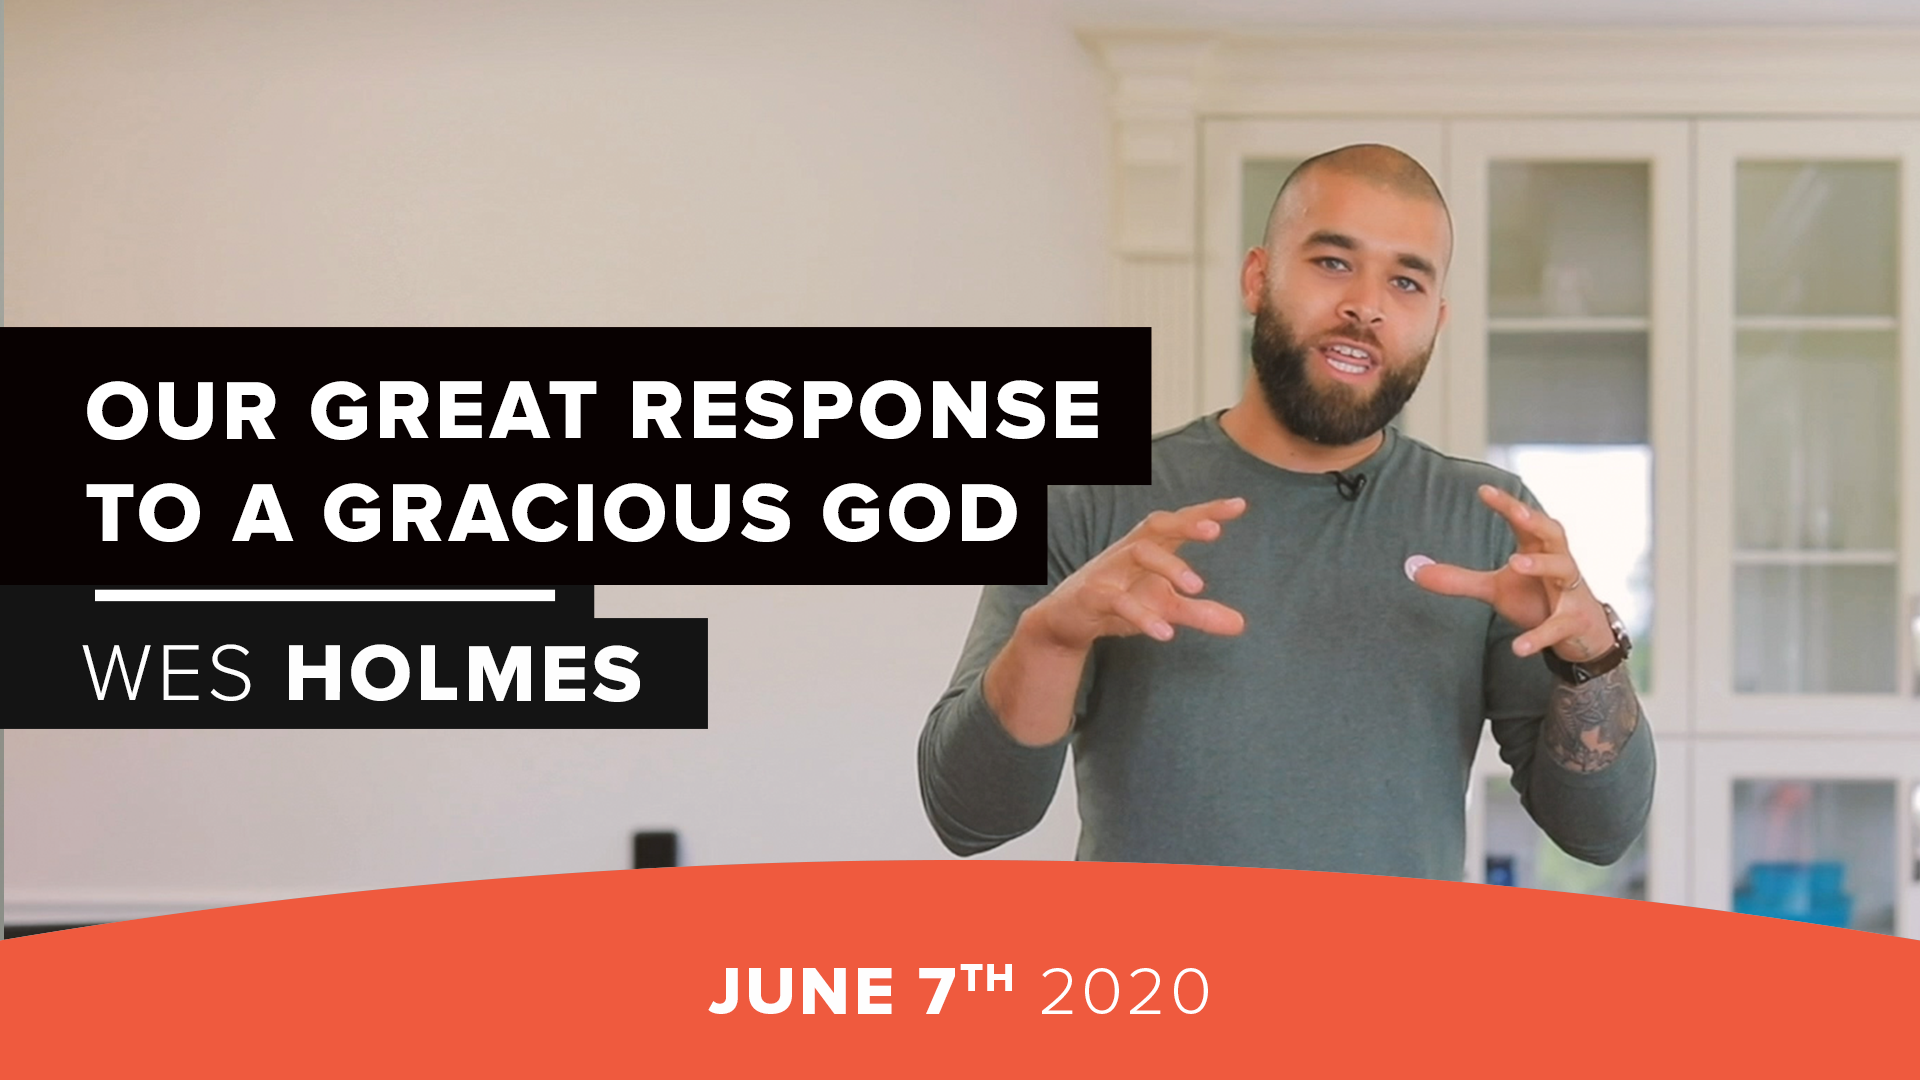 Our Great Response to a Gracious God